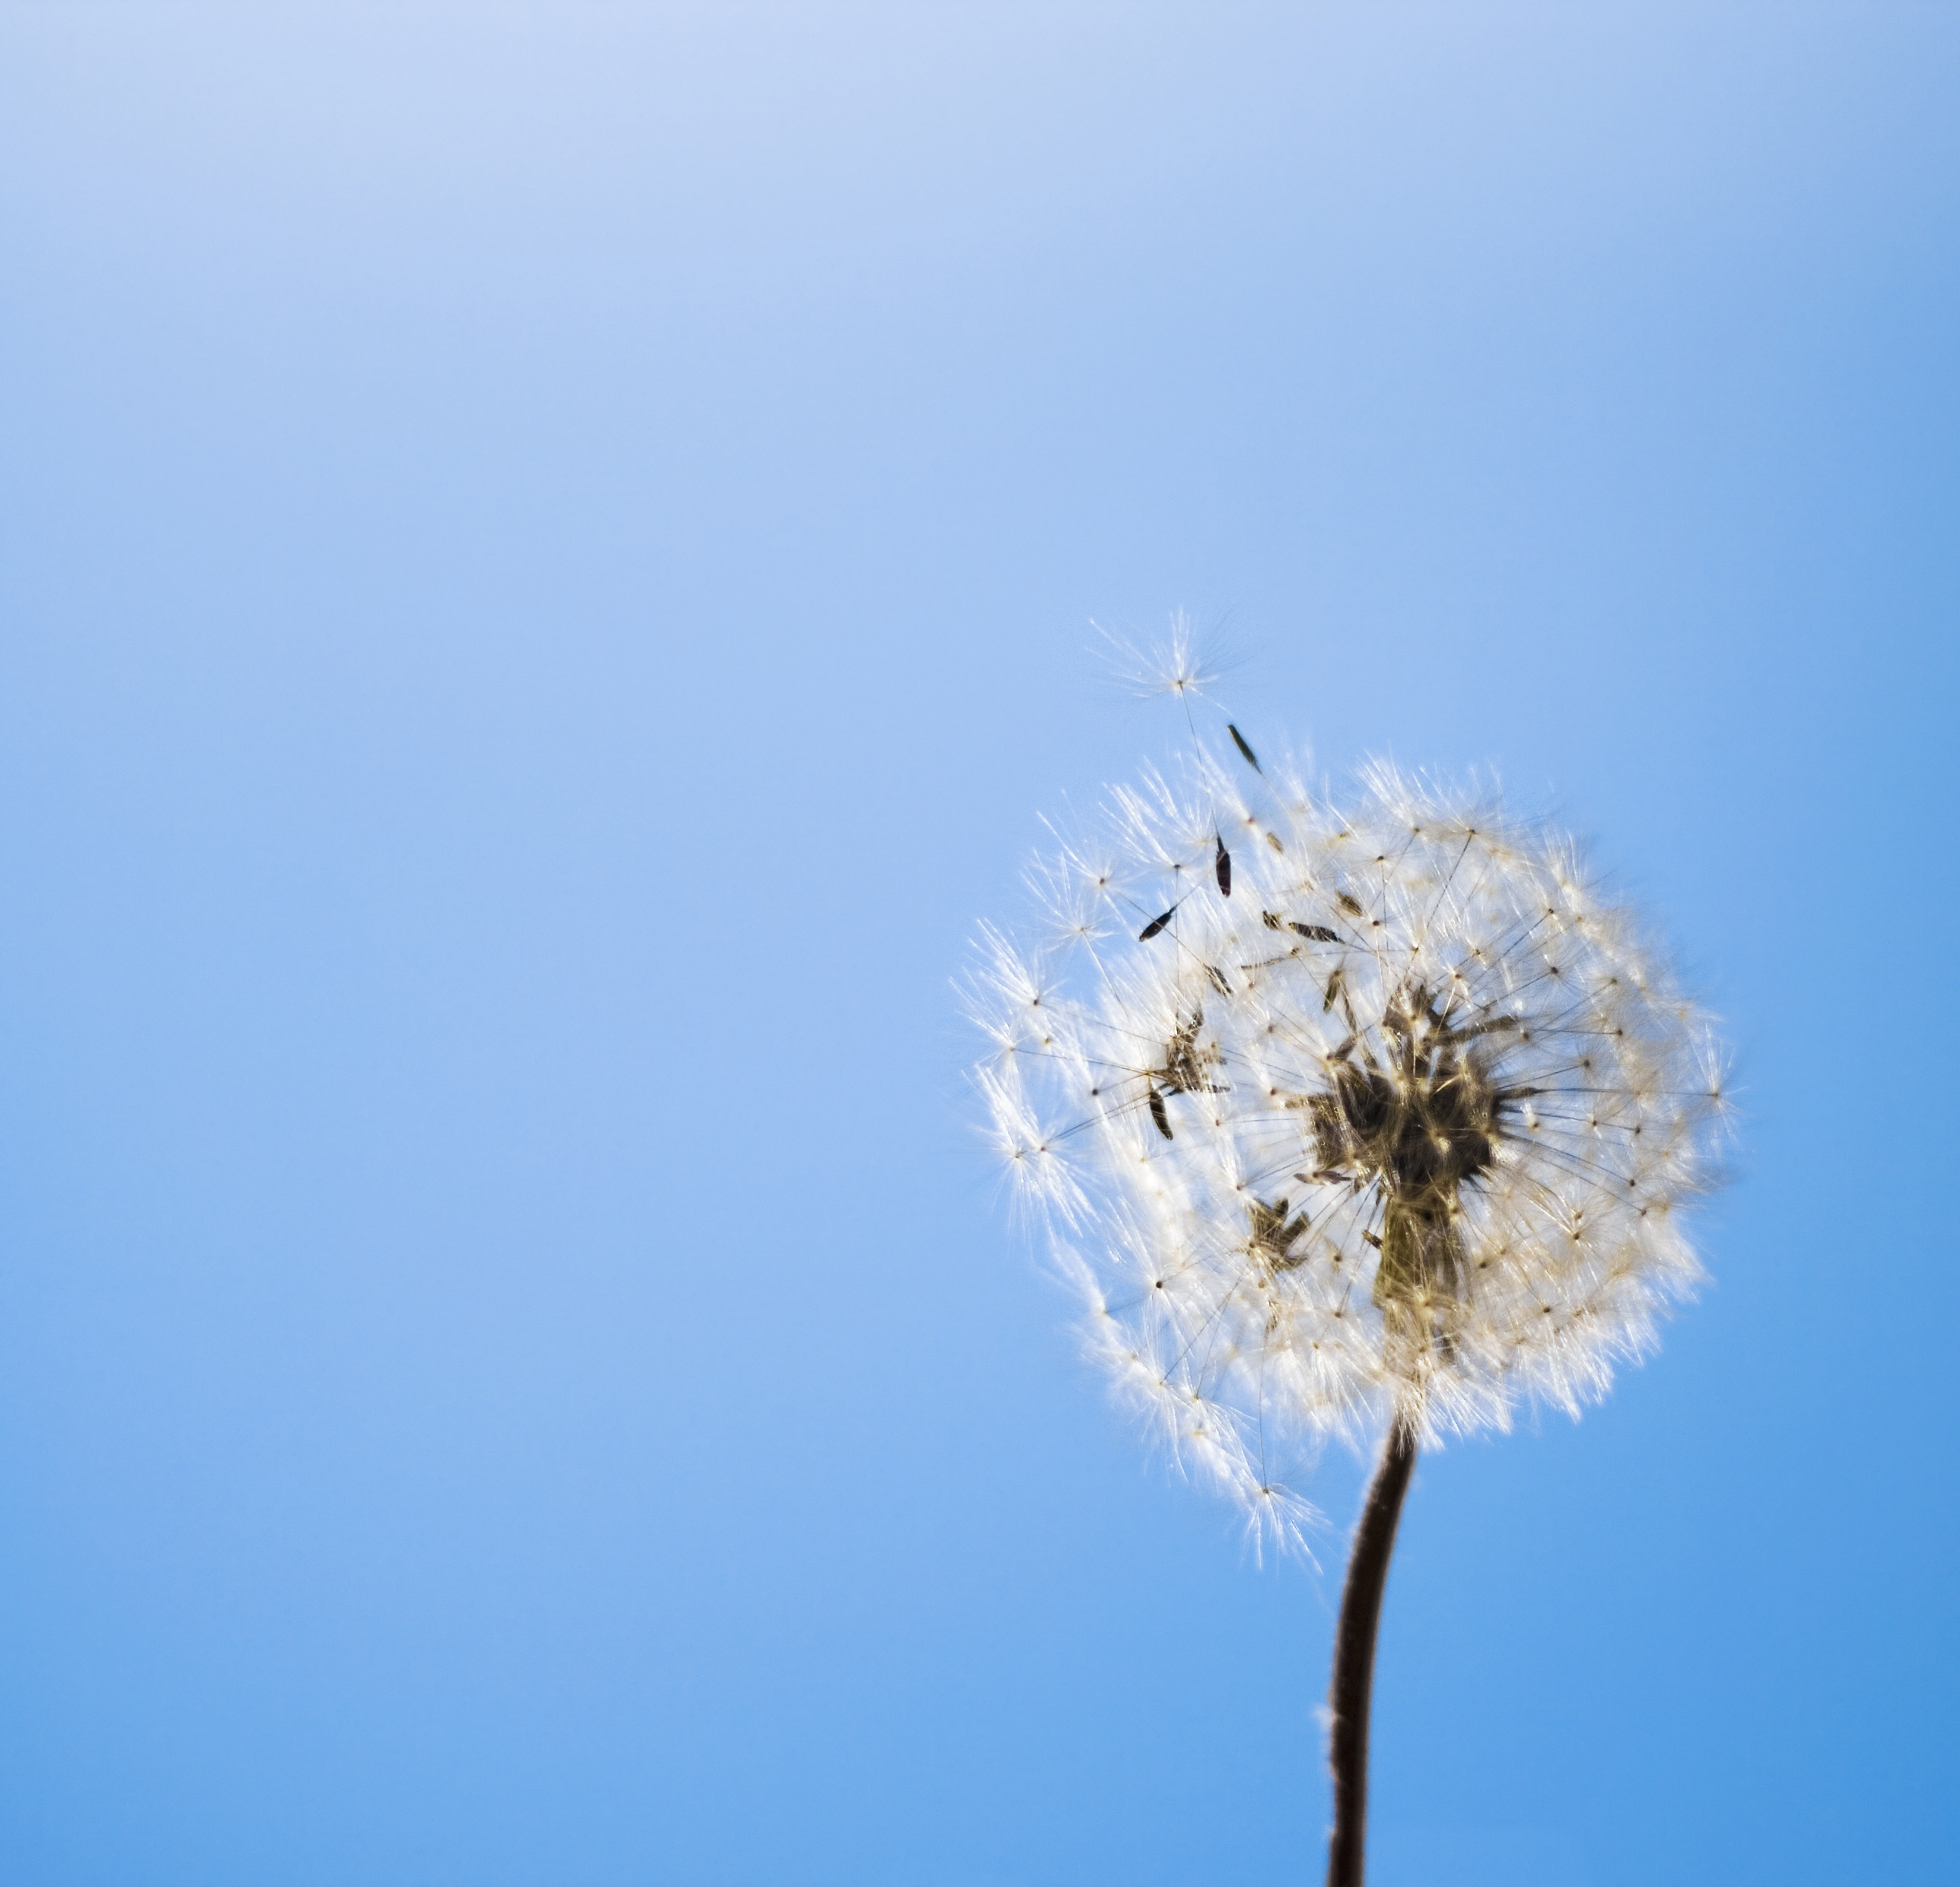 dandelion, Abstract, Head, White, Up, HQ Photo